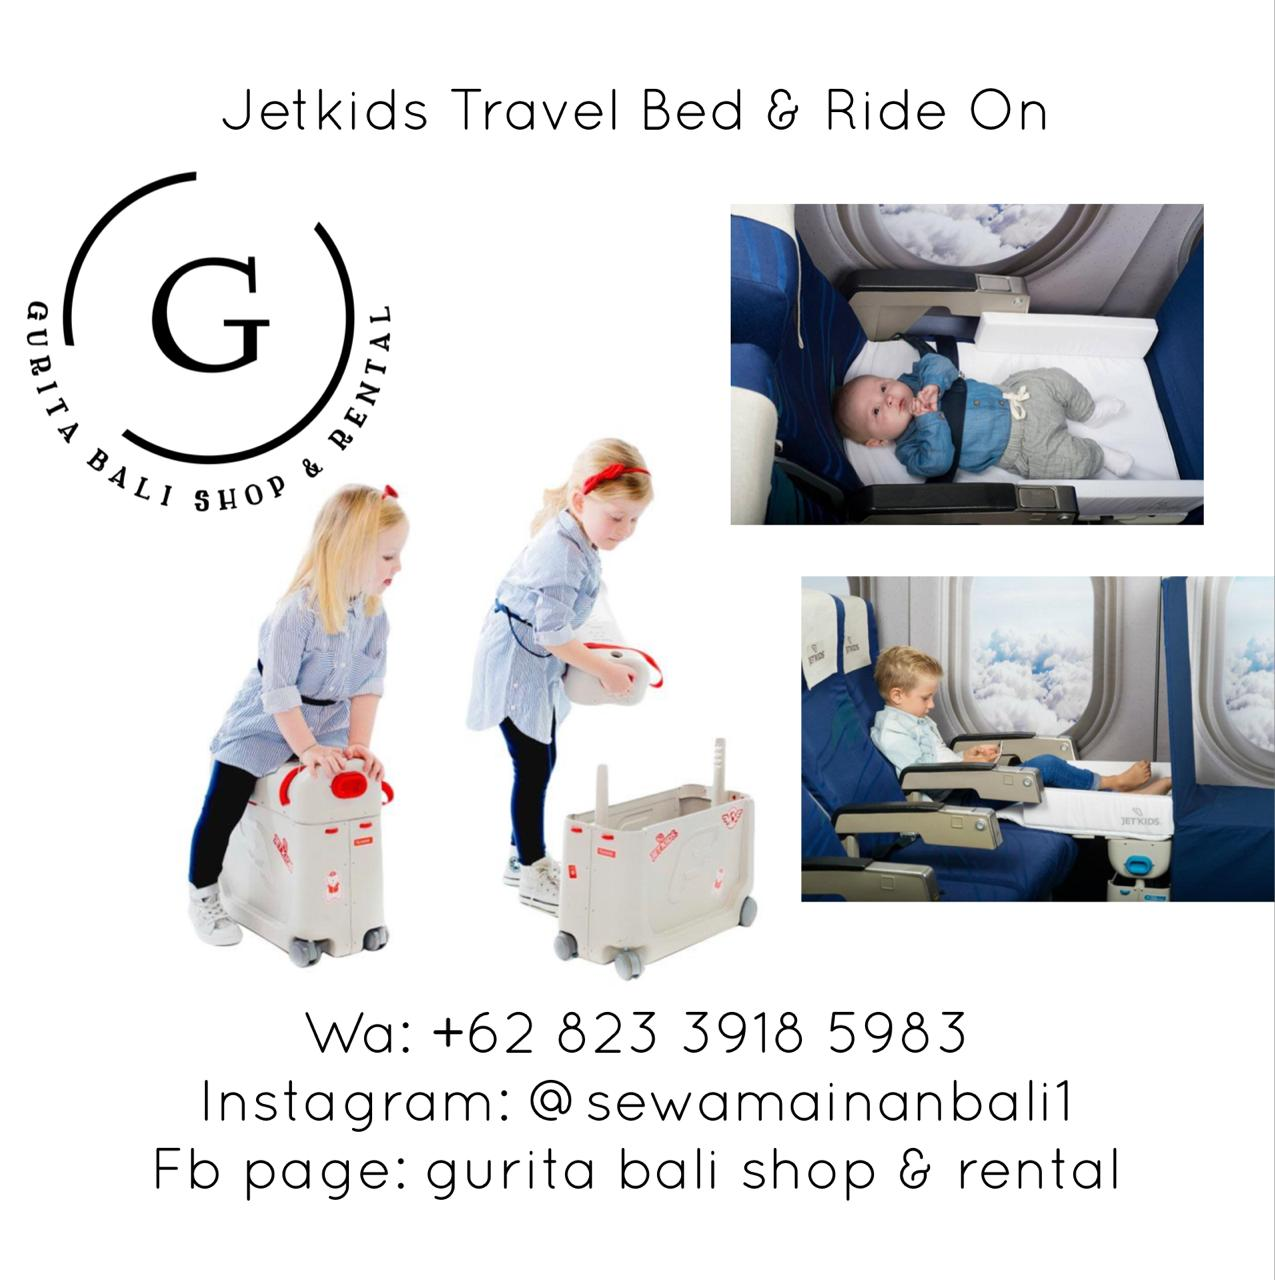 JETKIDS TRAVEL BED & RIDE ON